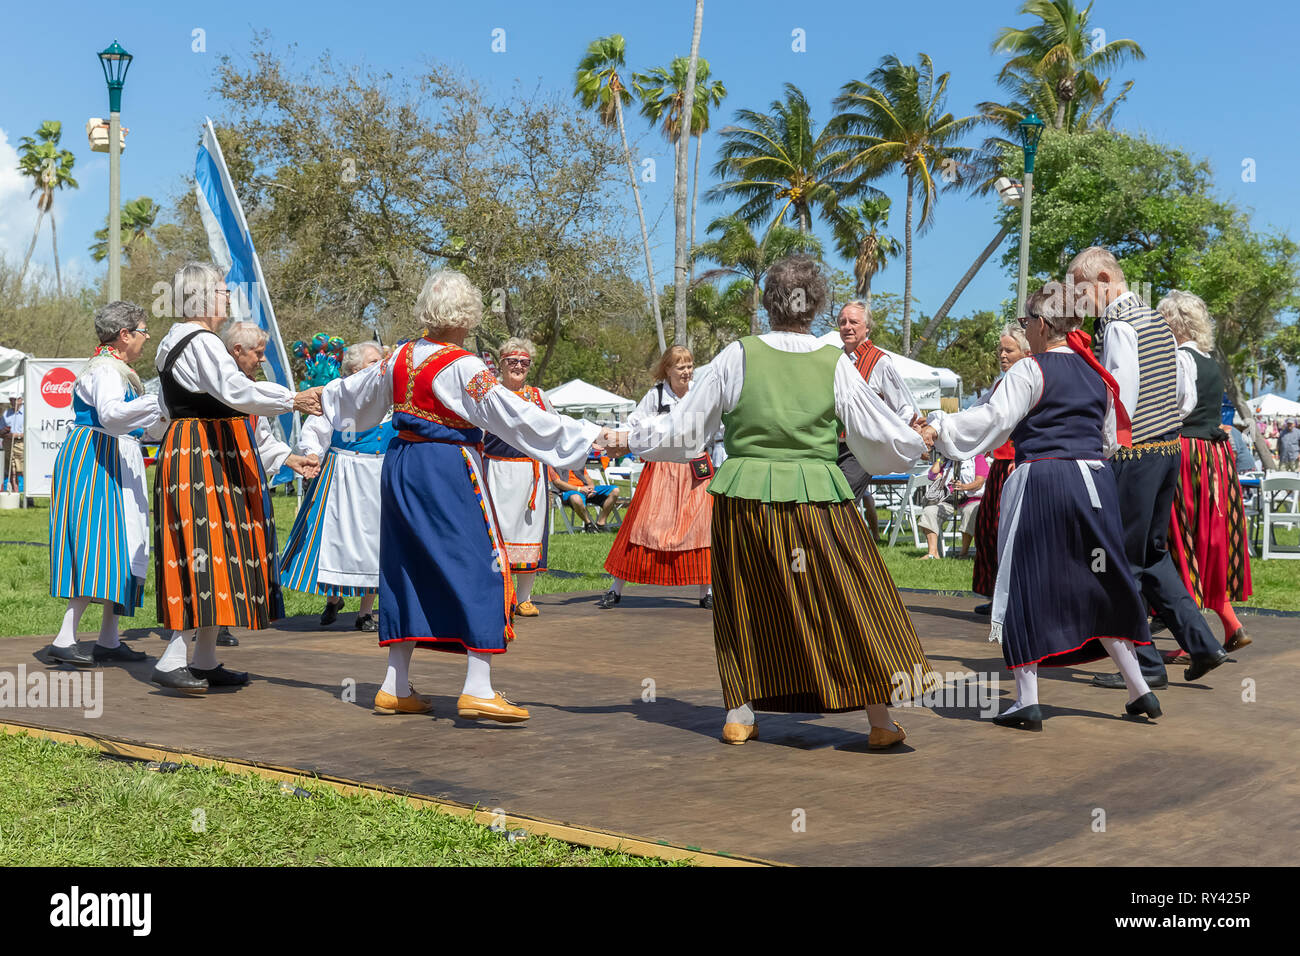 Lake Worth, Florida, USA March 3, 2019,​ Midnight Sun Festival Celebrating Finnish Culture. The couples form a large circle during a Finnish dance. - Stock Image